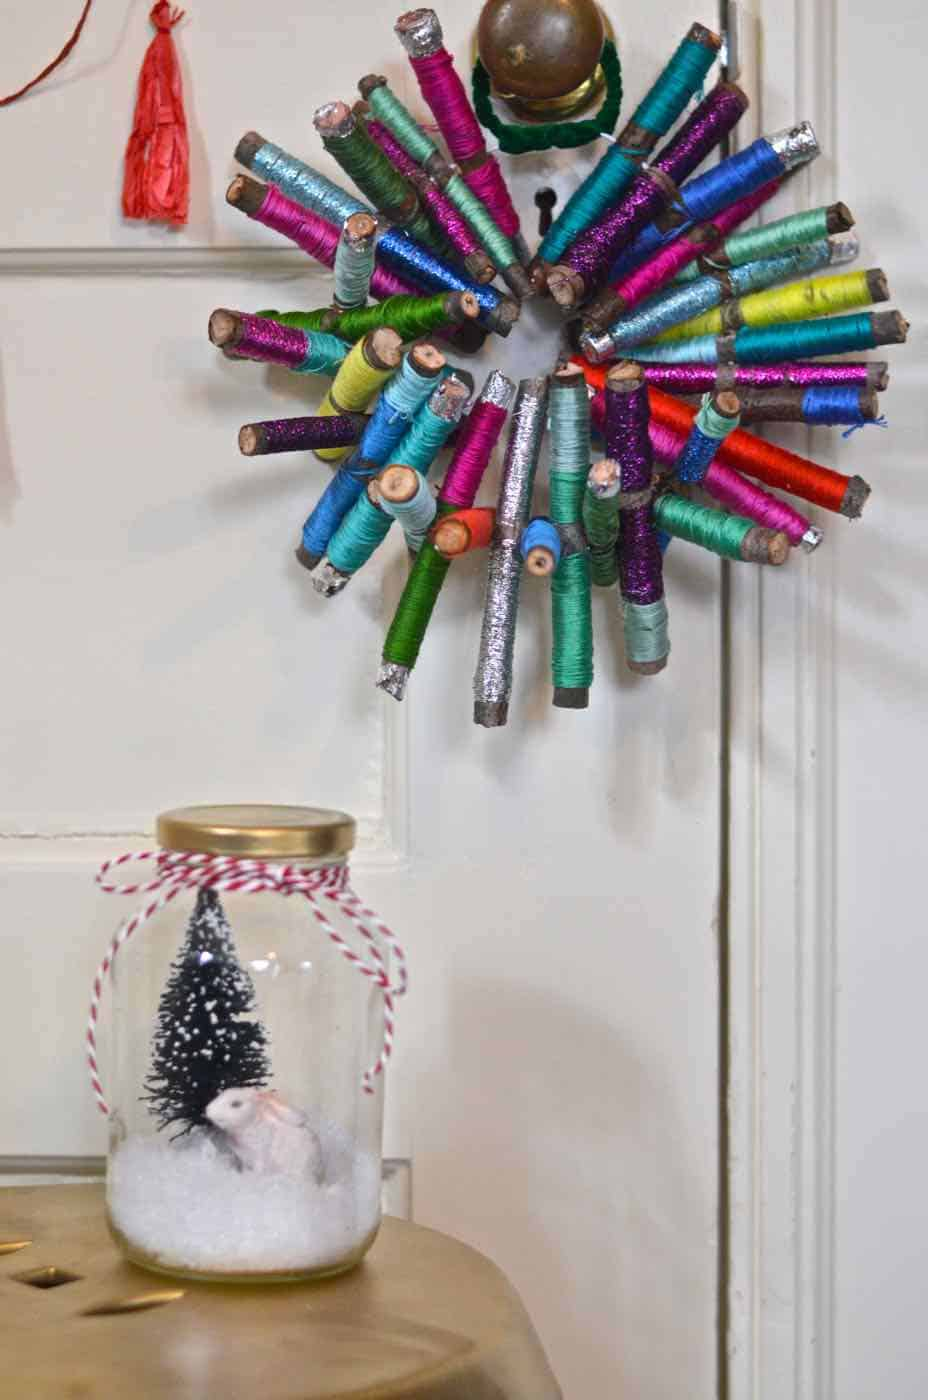 Sticks and thread transformed into this colorful rustic wreath.